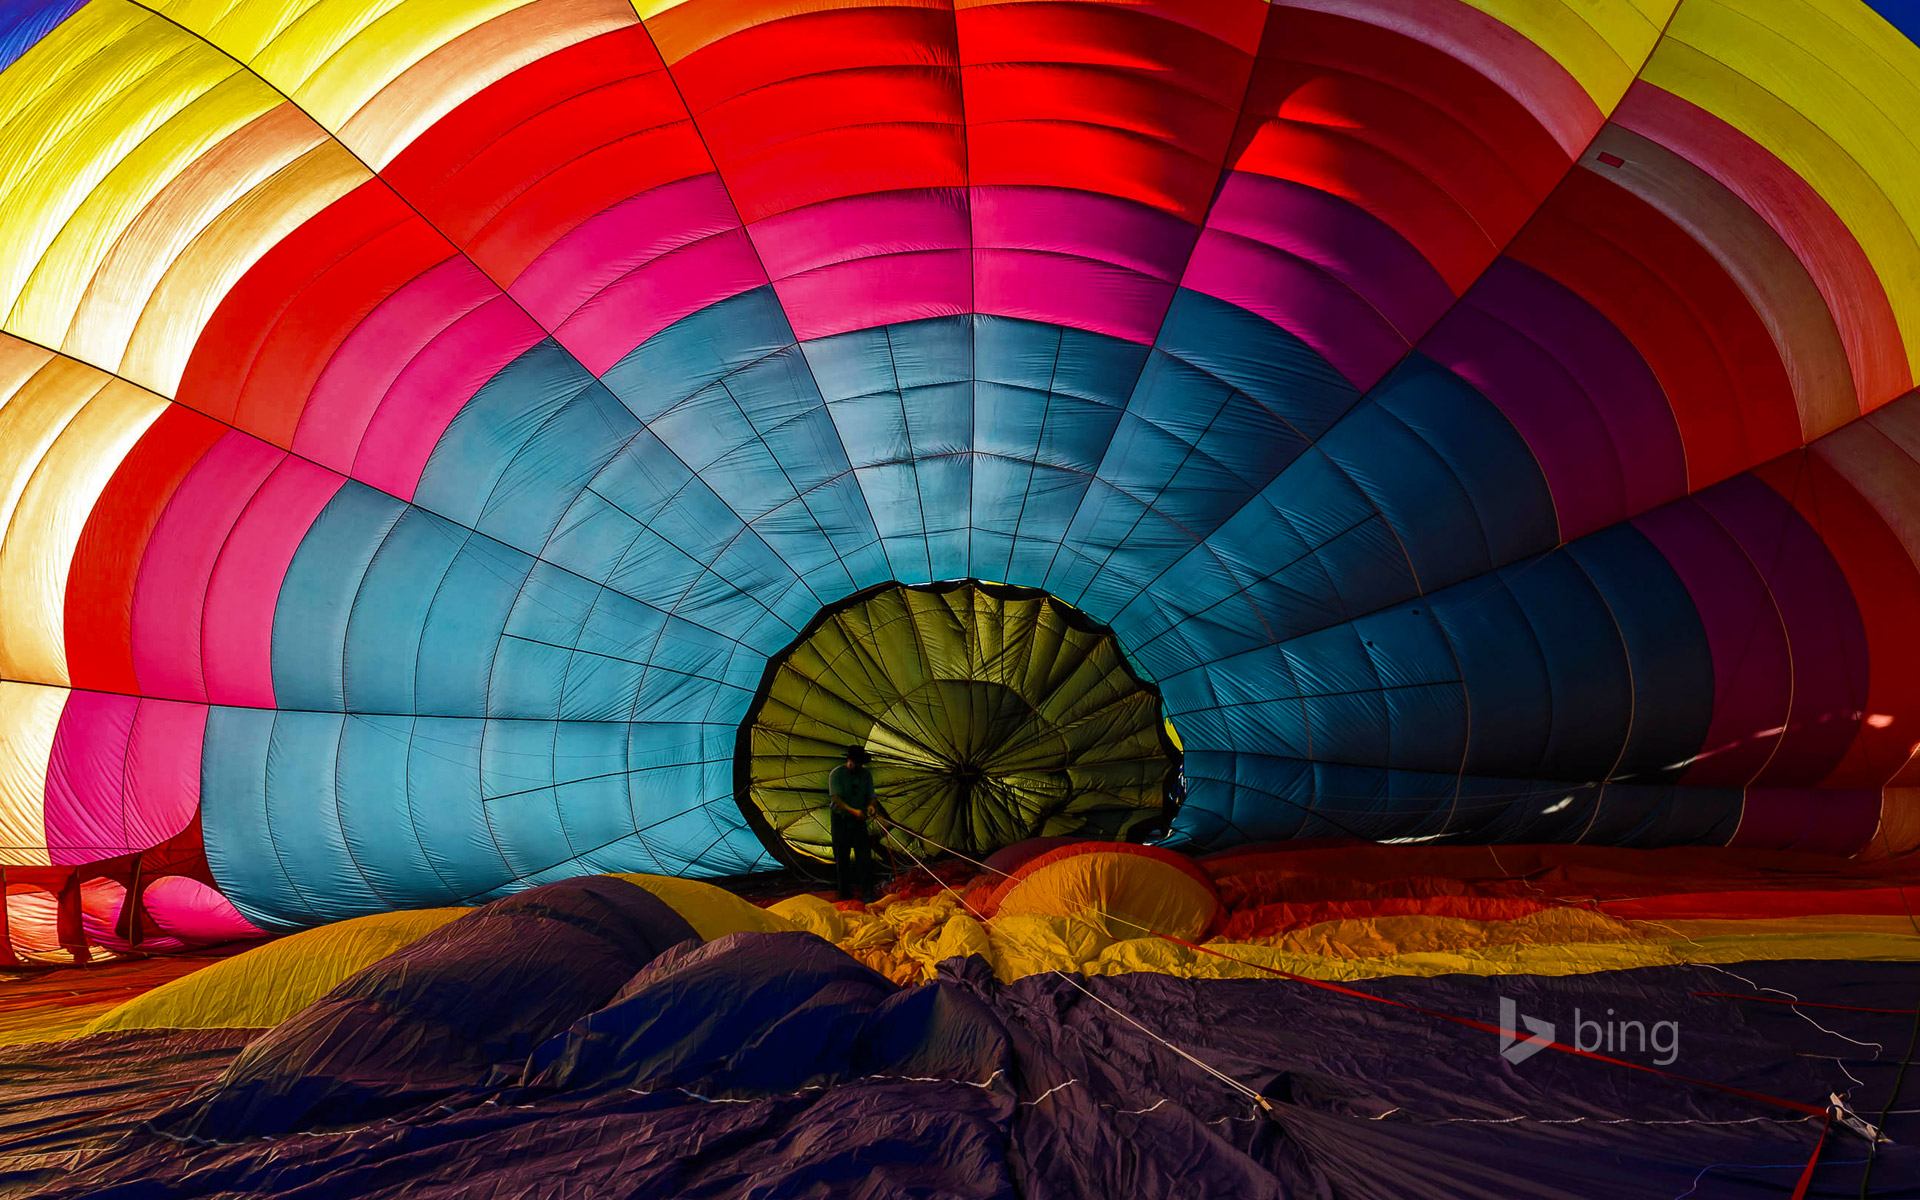 Hot air balloon inflating for the Winthrop Balloon Festival in Washington State